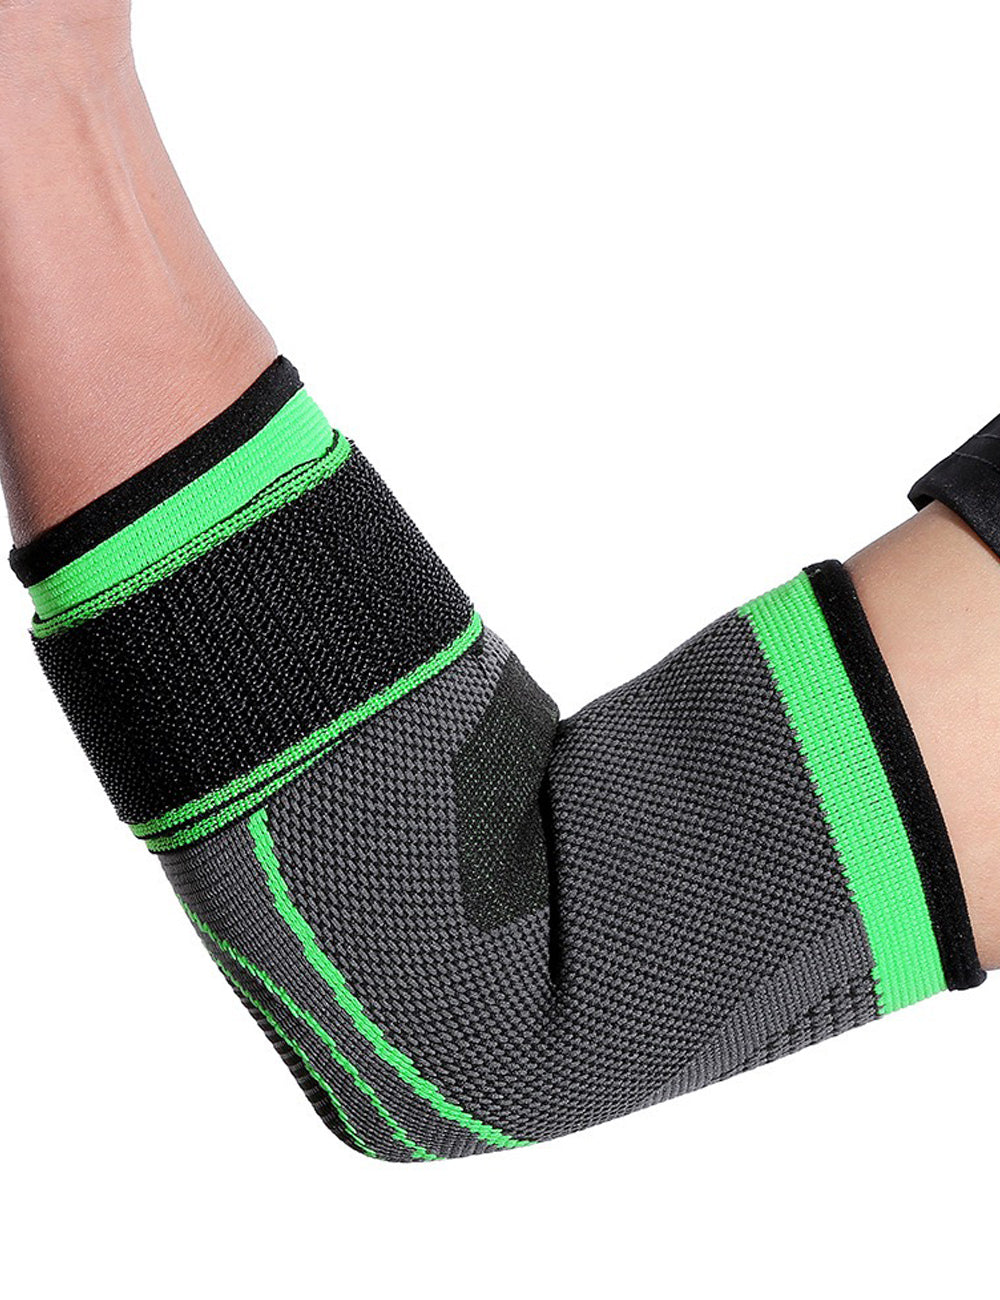 Elbow Brace Compression Sleeve Arm Support - Sports Accessories Collectors - Shinymod